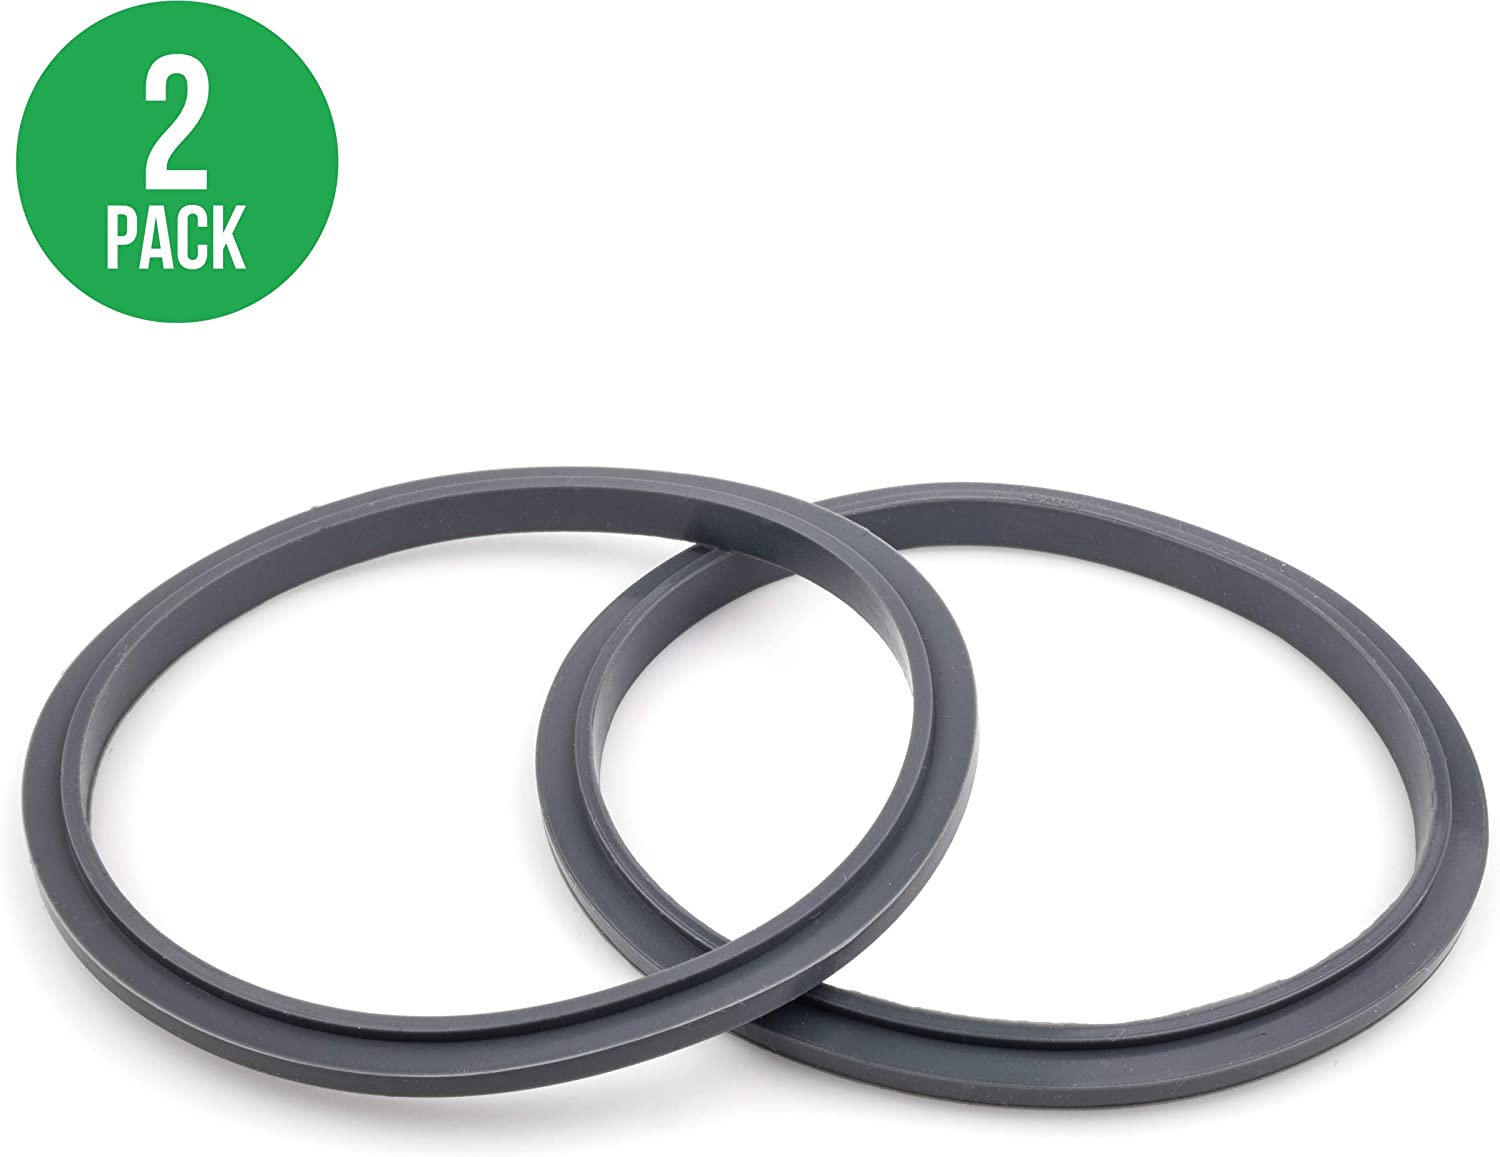 CloudCUP Seal Ring Gaskets with Lip - Gasket for Nutribullet 600/900 Series (Pack of 2)